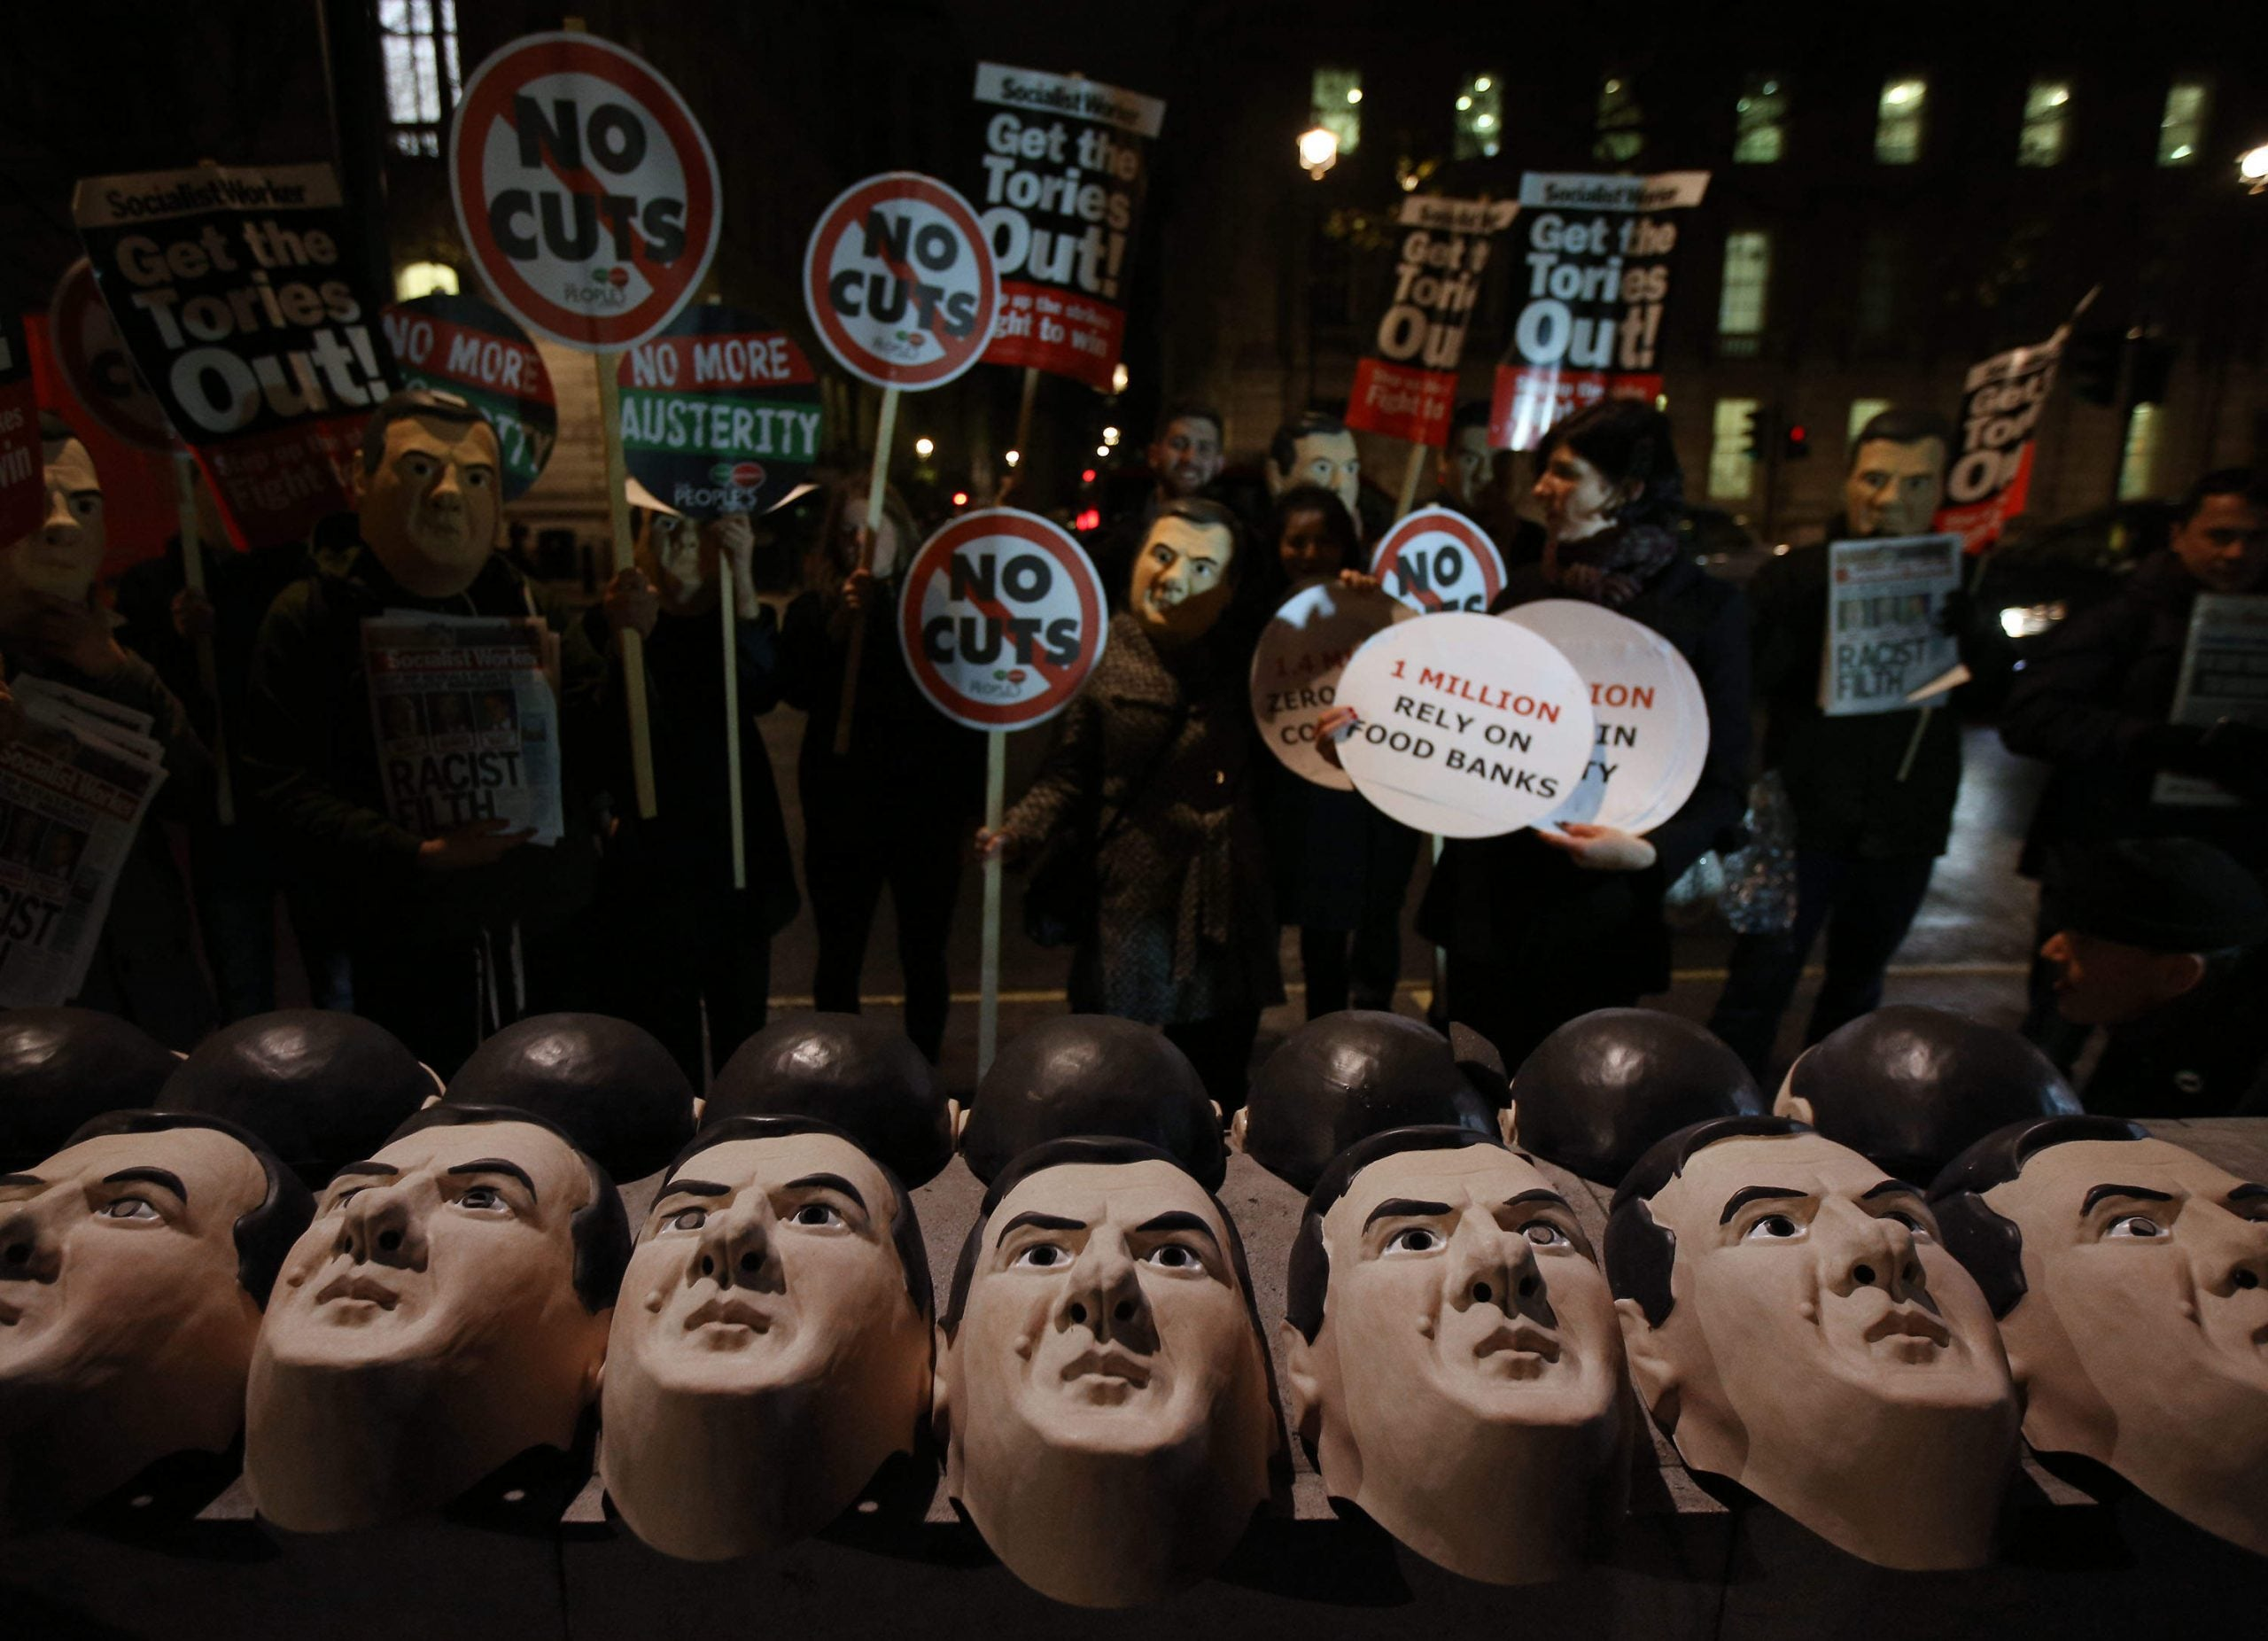 The Tories have stopped talking about austerity. That doesn't mean it's gone away